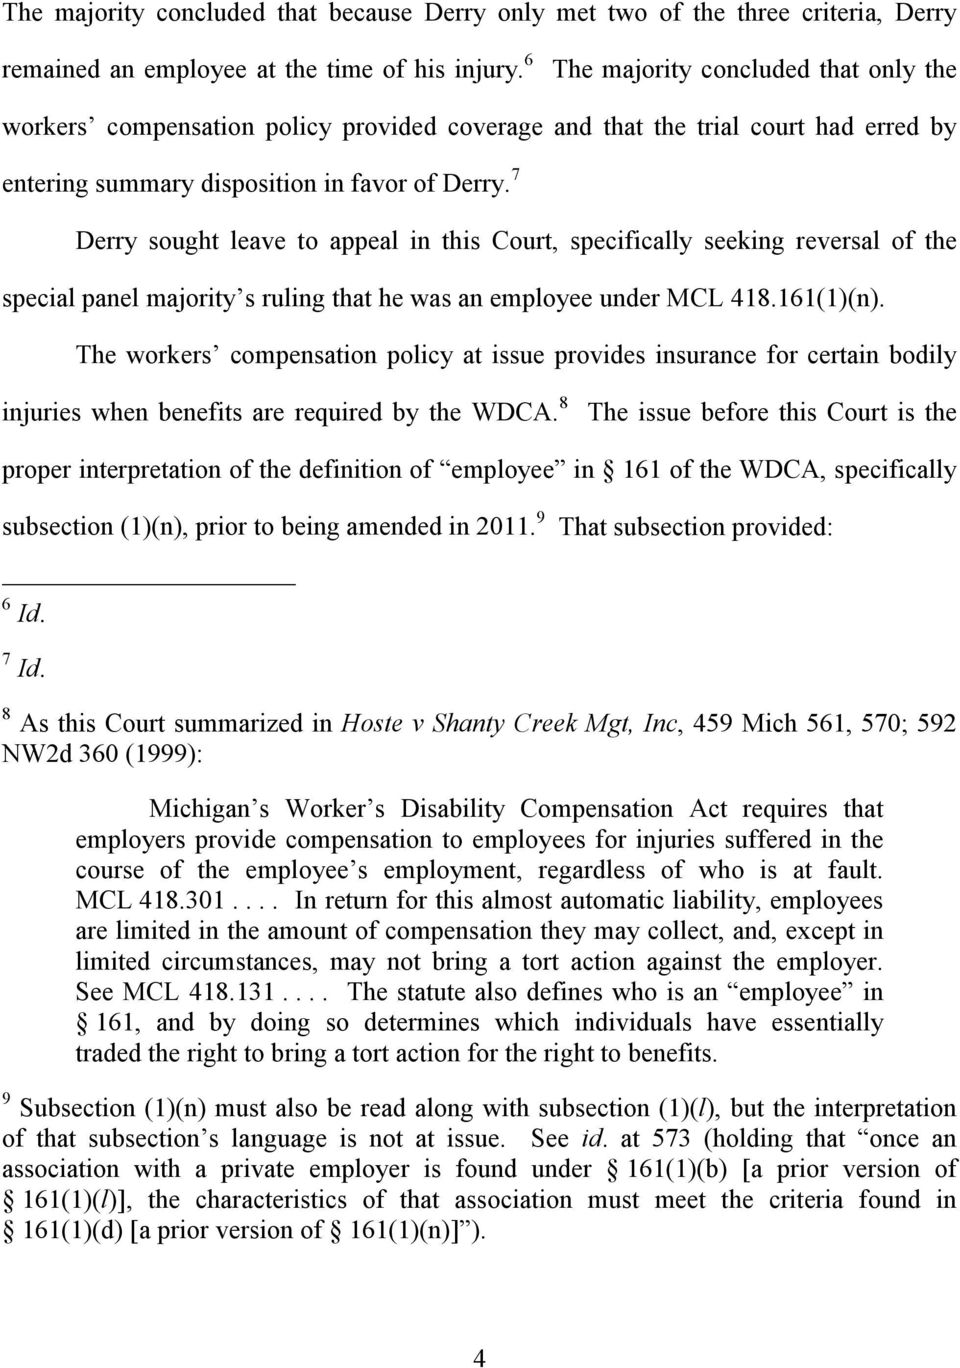 7 Derry sought leave to appeal in this Court, specifically seeking reversal of the special panel majority s ruling that he was an employee under MCL 418.161(1)(n).